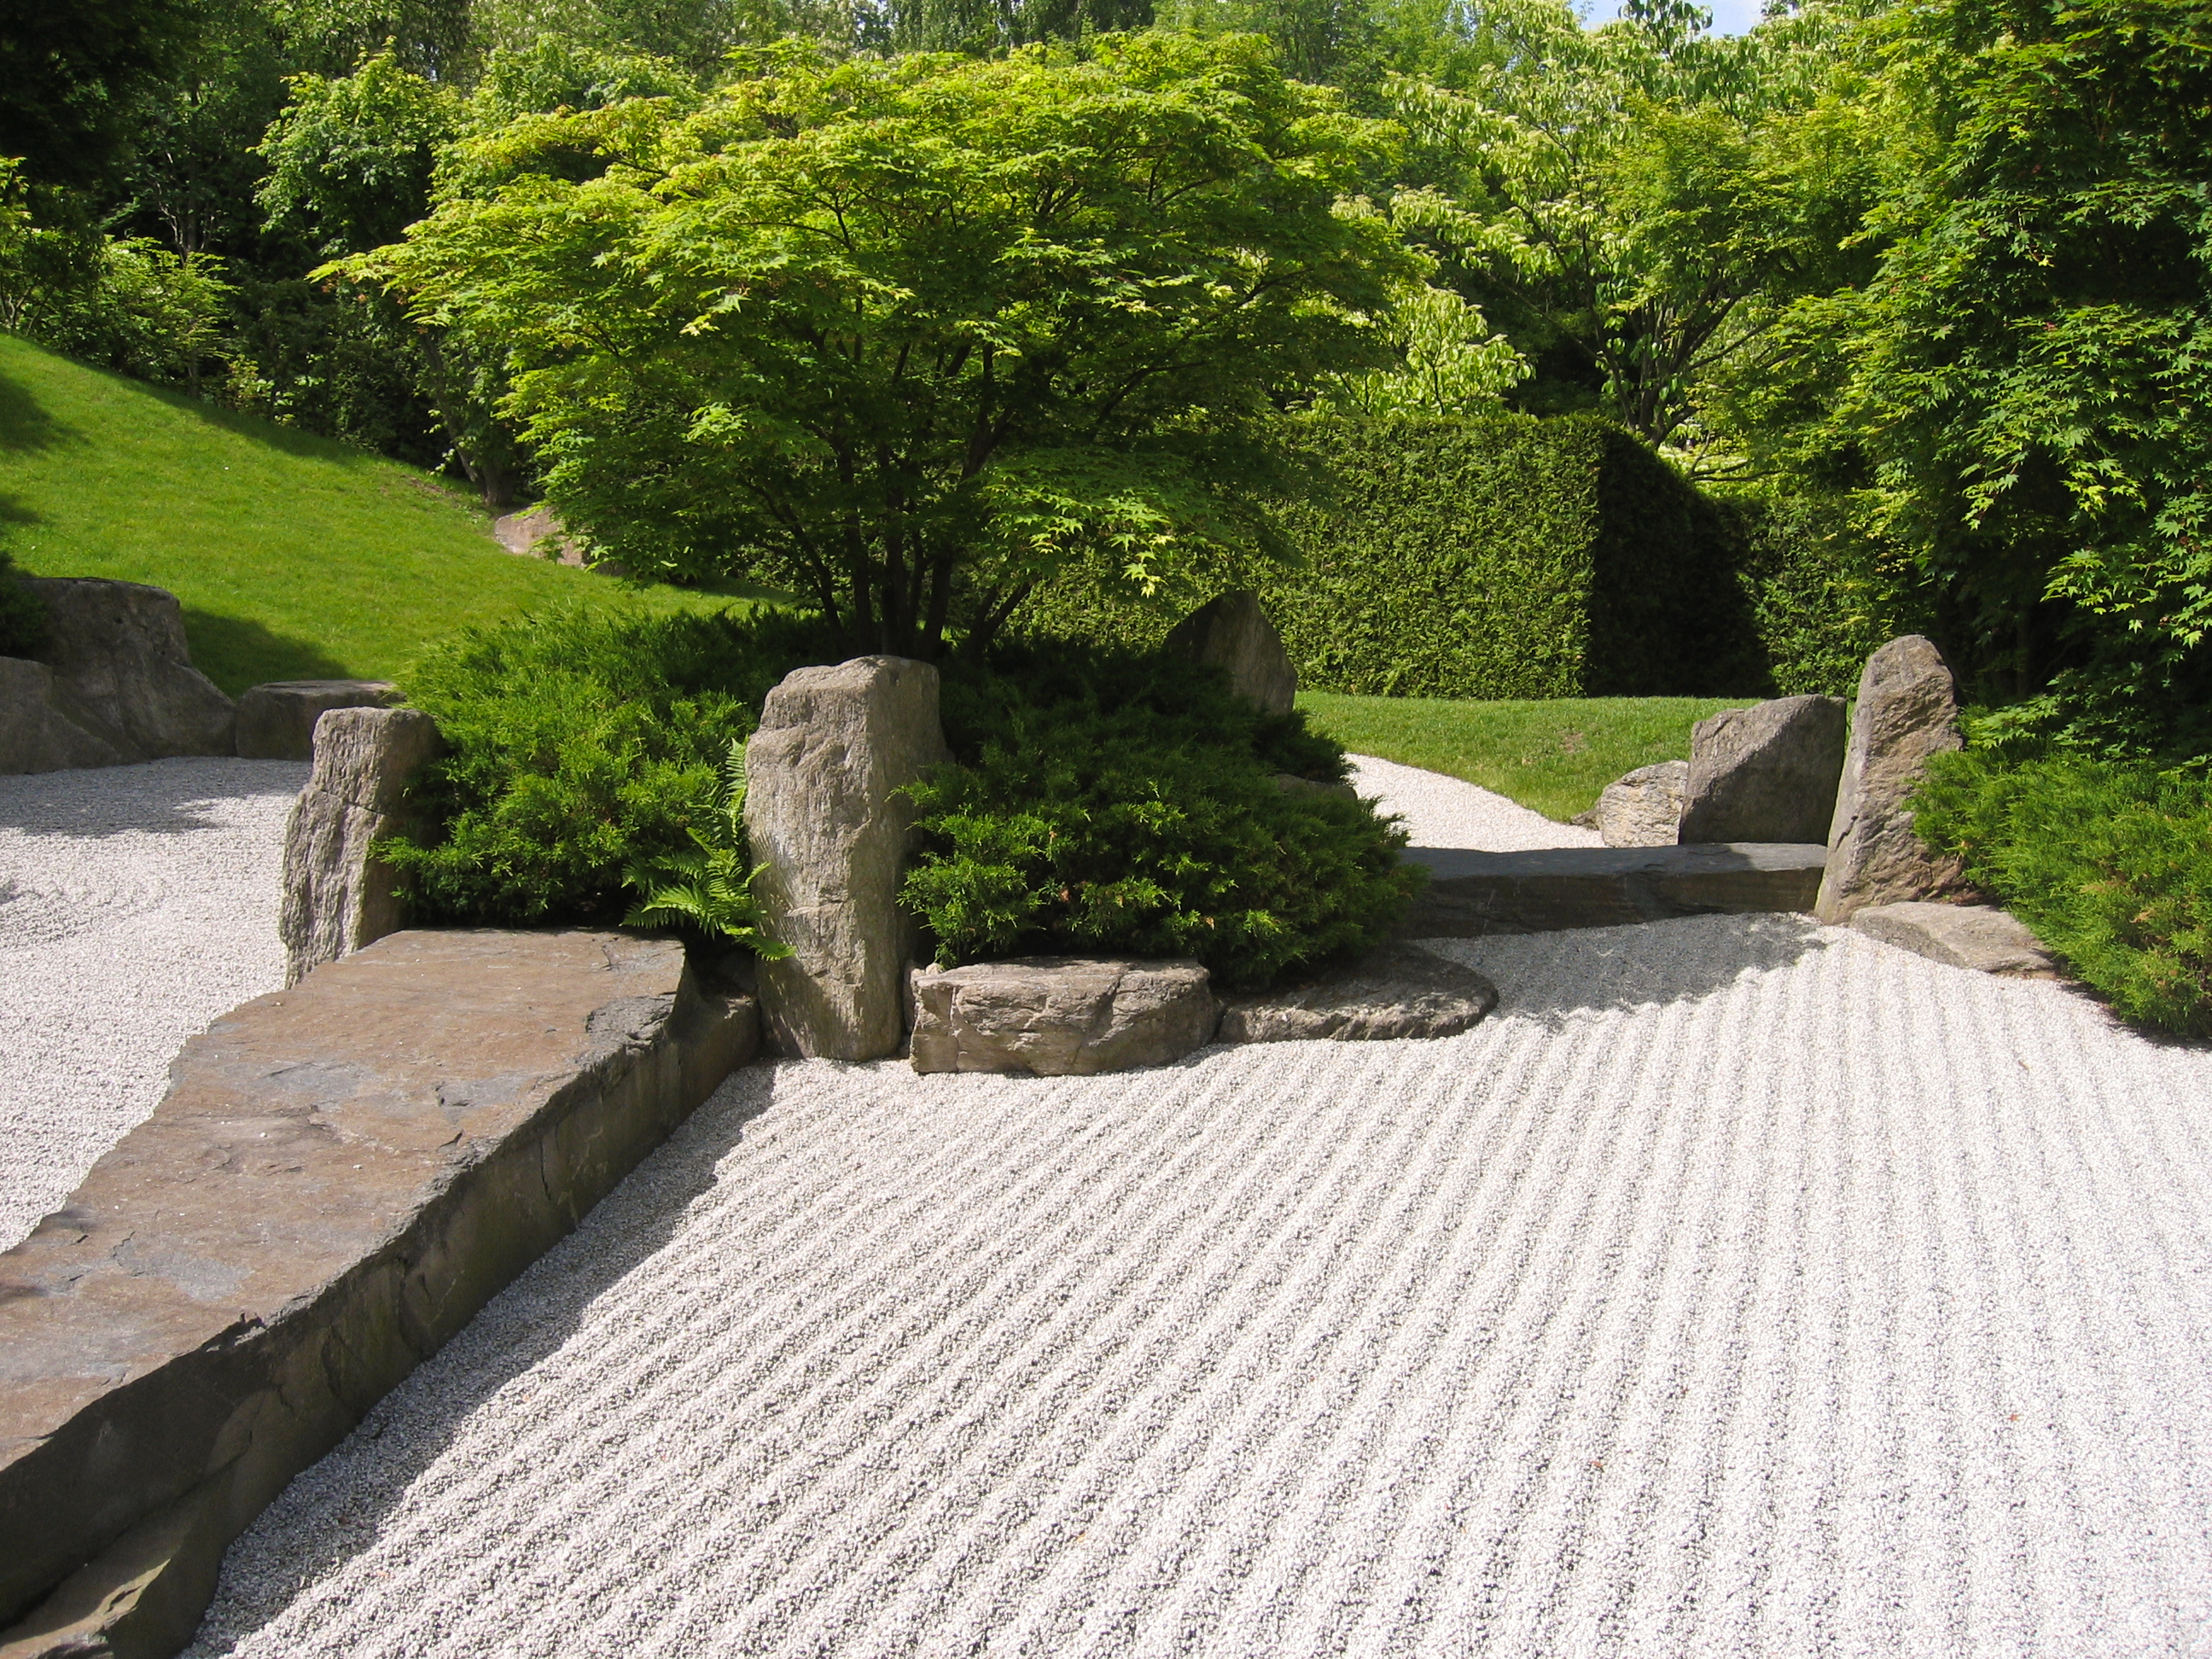 Garden design common garden stylesse landscape for Japanese stone garden